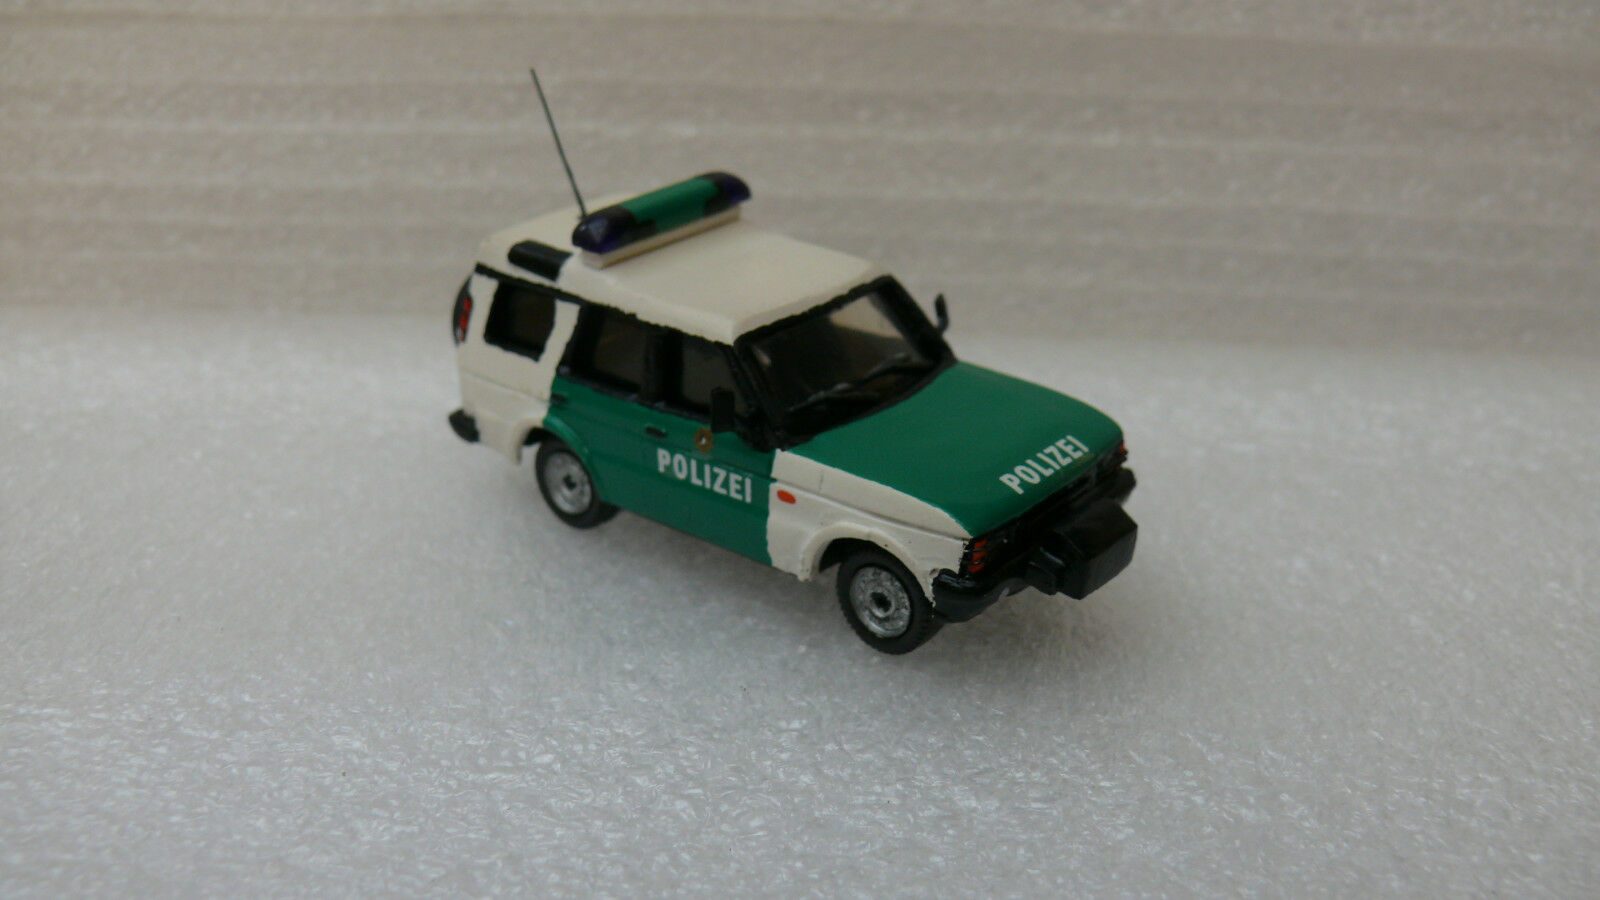 POLICE BERLIN BPA BEPO fükw  Land Rover Discovery Extension quoi h0 1 87 TOP  commander maintenant les prix les plus bas